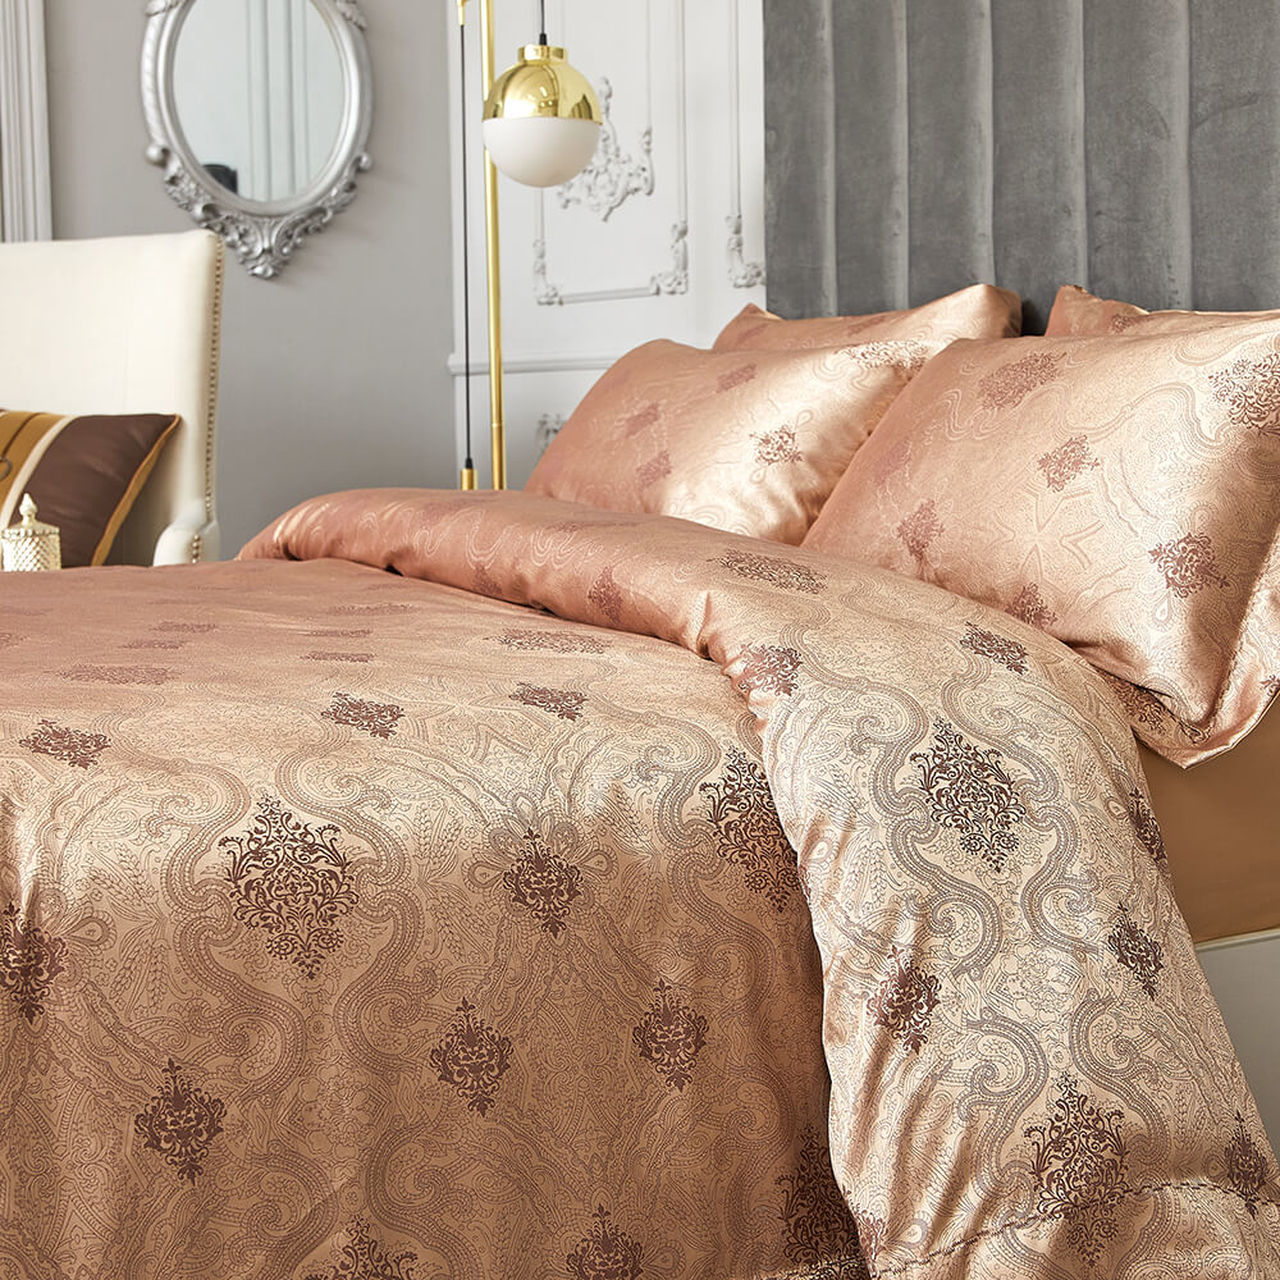 Golden Jacquard Luxury Duvet Cover Bedding Set